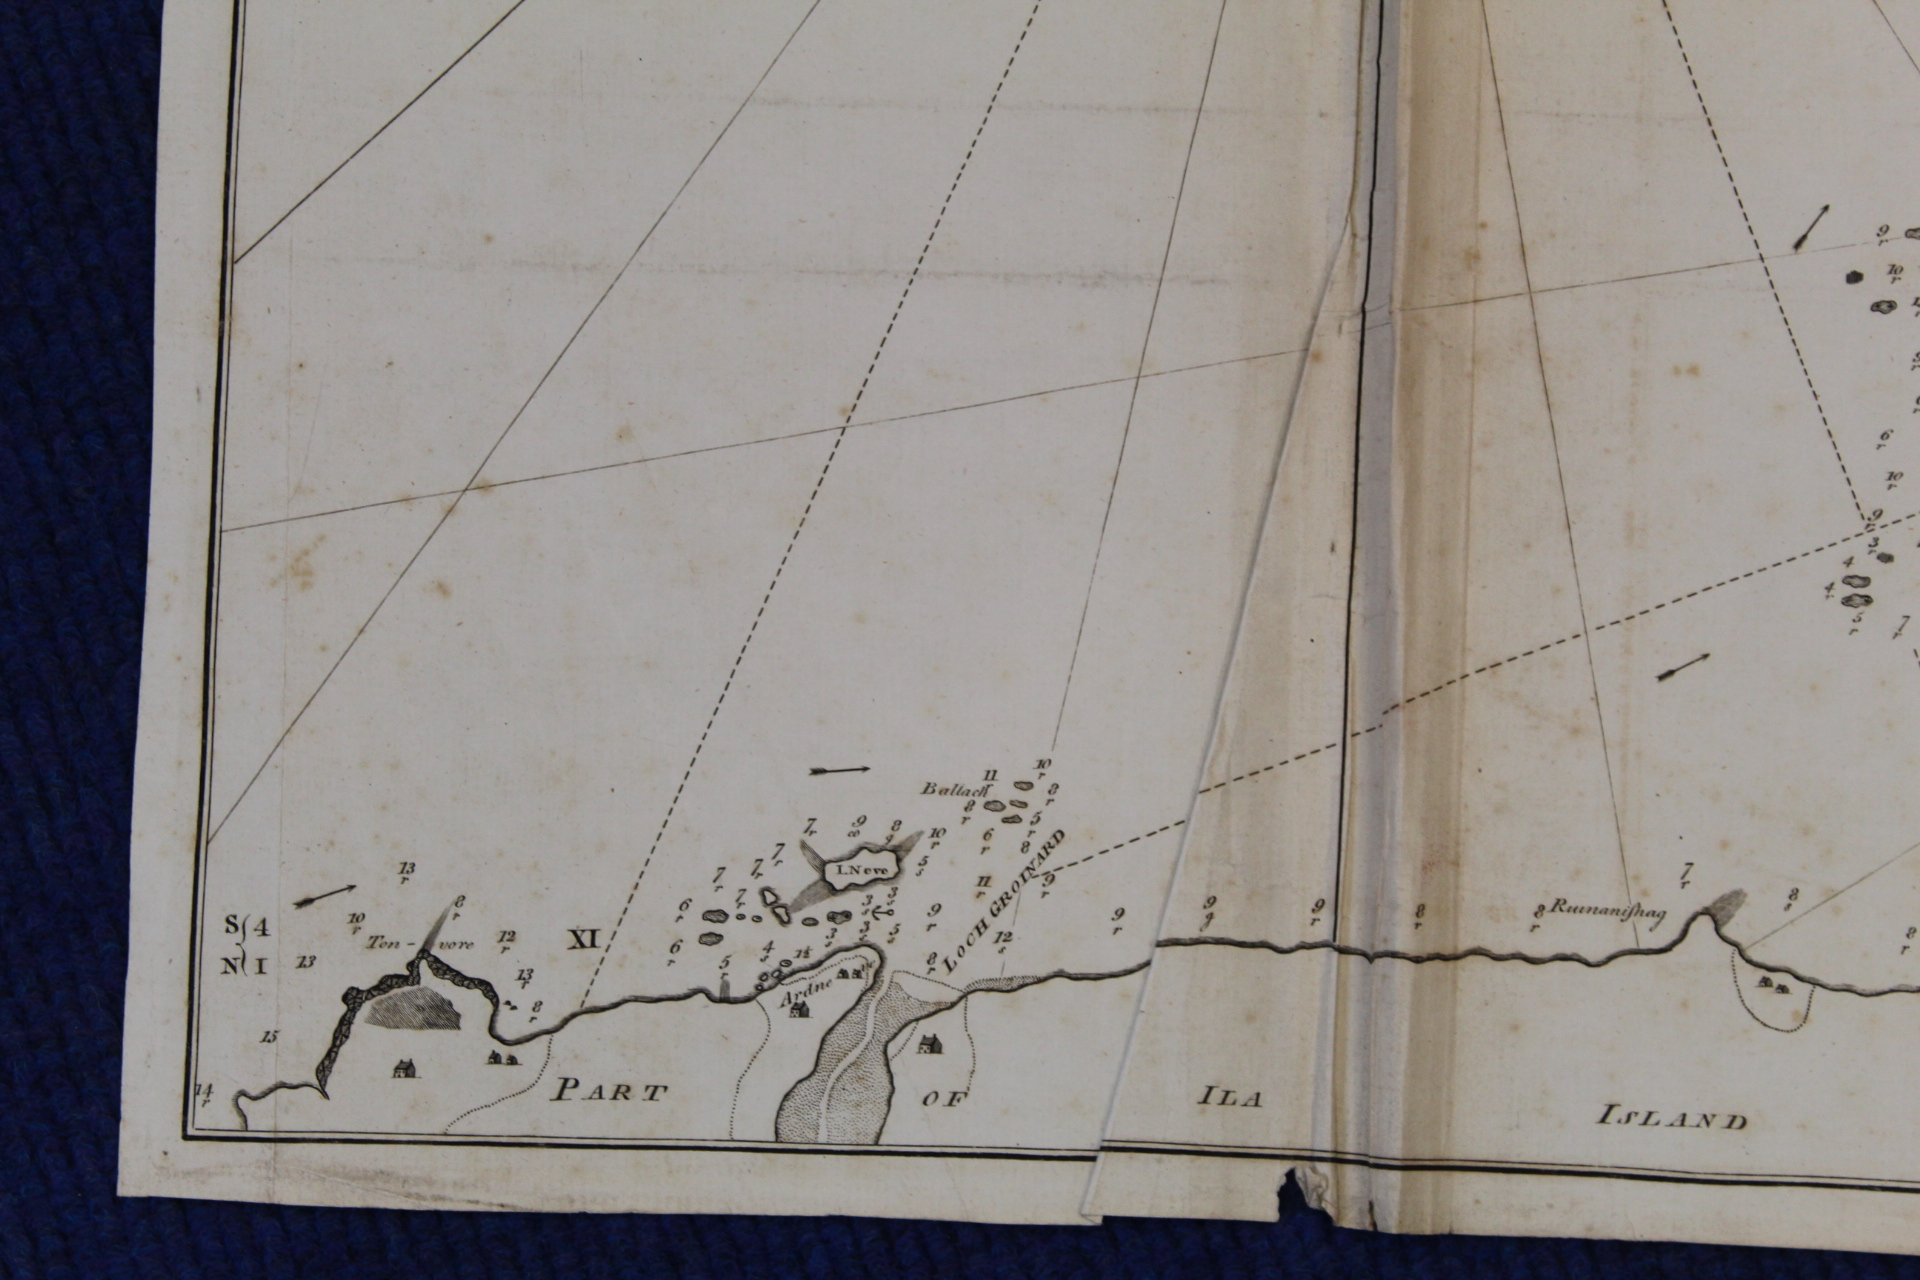 MACKENZIE MURDOCH (SNR.).A General Chart of the West Coast & Western Islands of Scotland from - Image 61 of 66